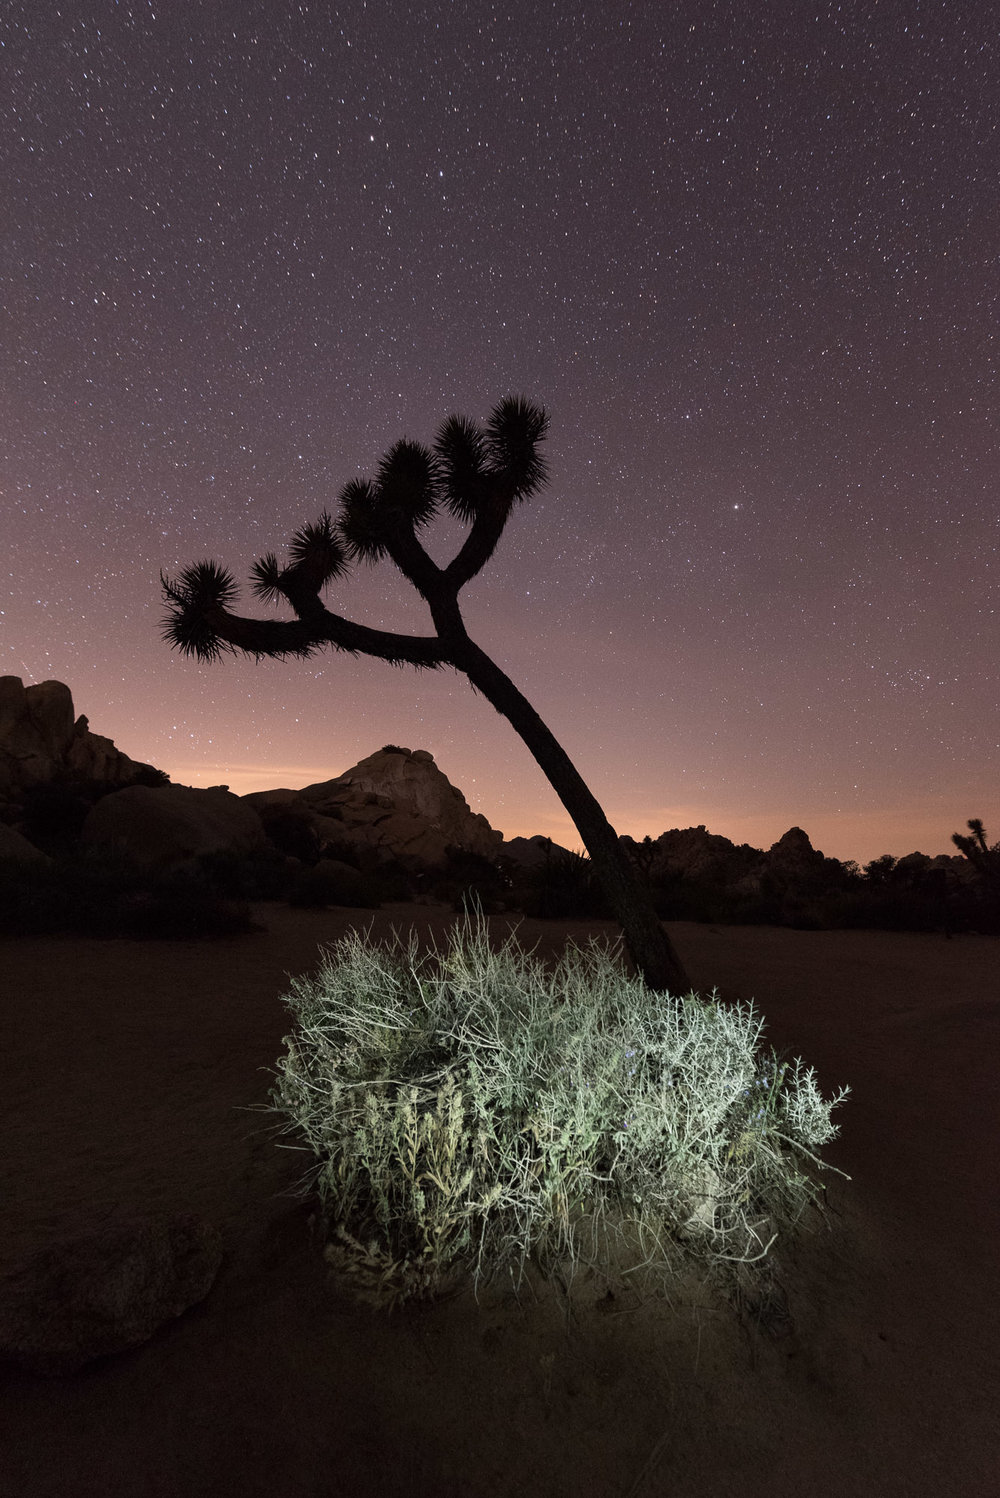 Joshua Tree National Park. 20 seconds, f/3.5, ISO 6400. Lingering twilight in the western sky combined with light painting on the foreground.